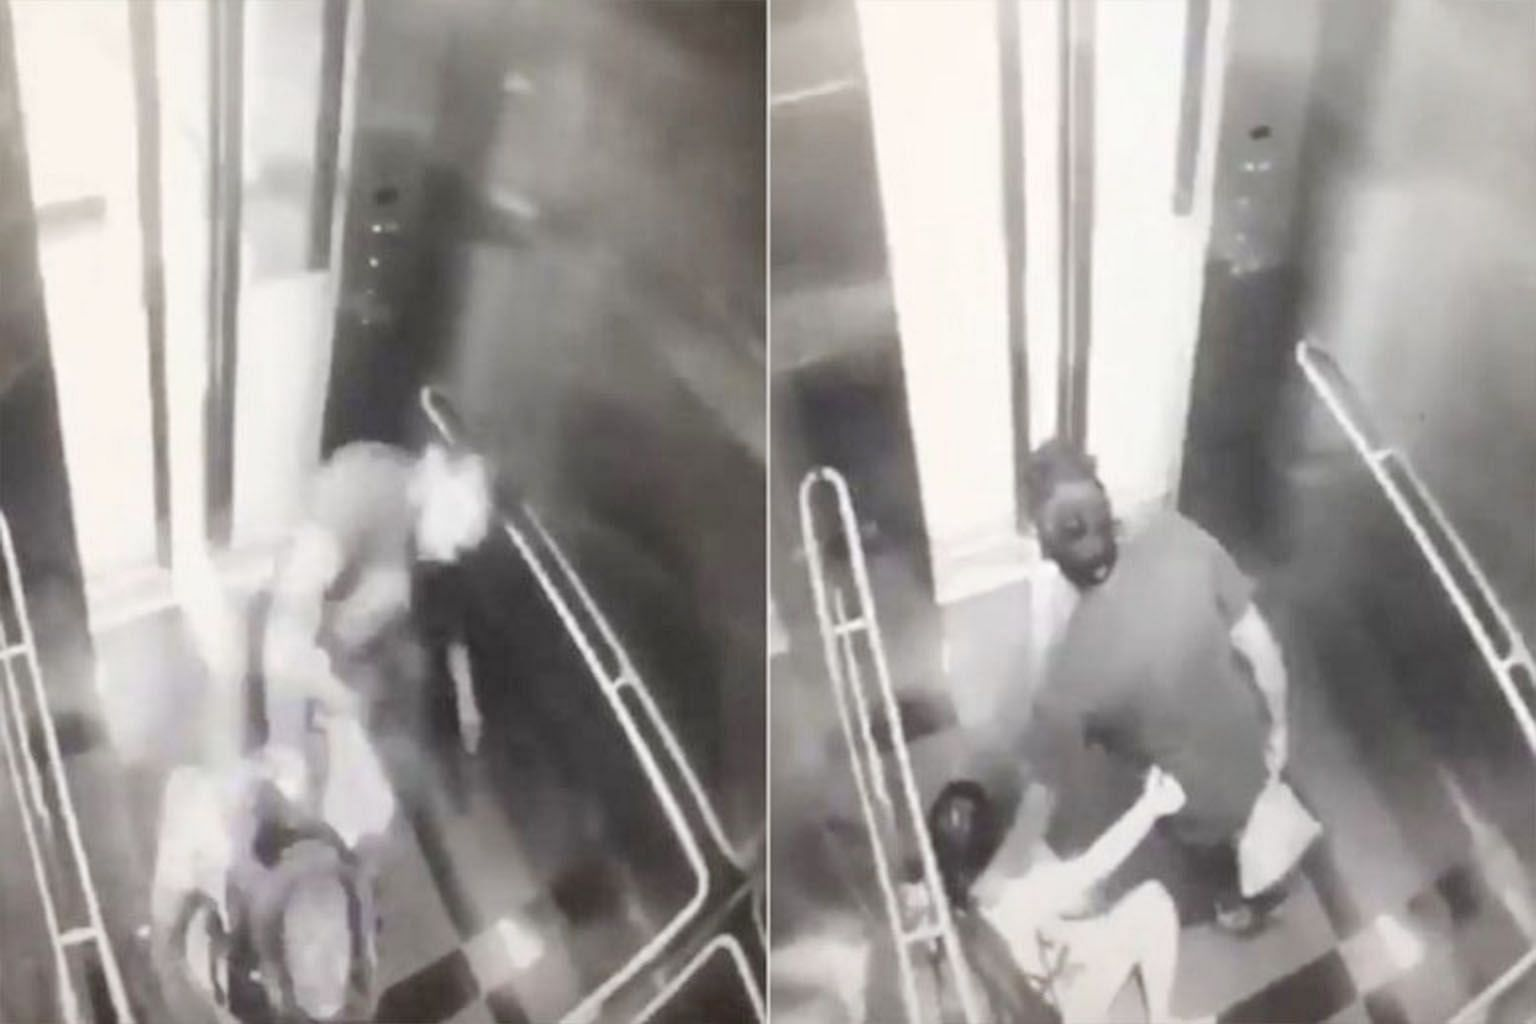 The robbery and brutal beating in the lift of an MRT station in Kuala Lumpur was captured on surveillance camera, and the video has since gone viral.